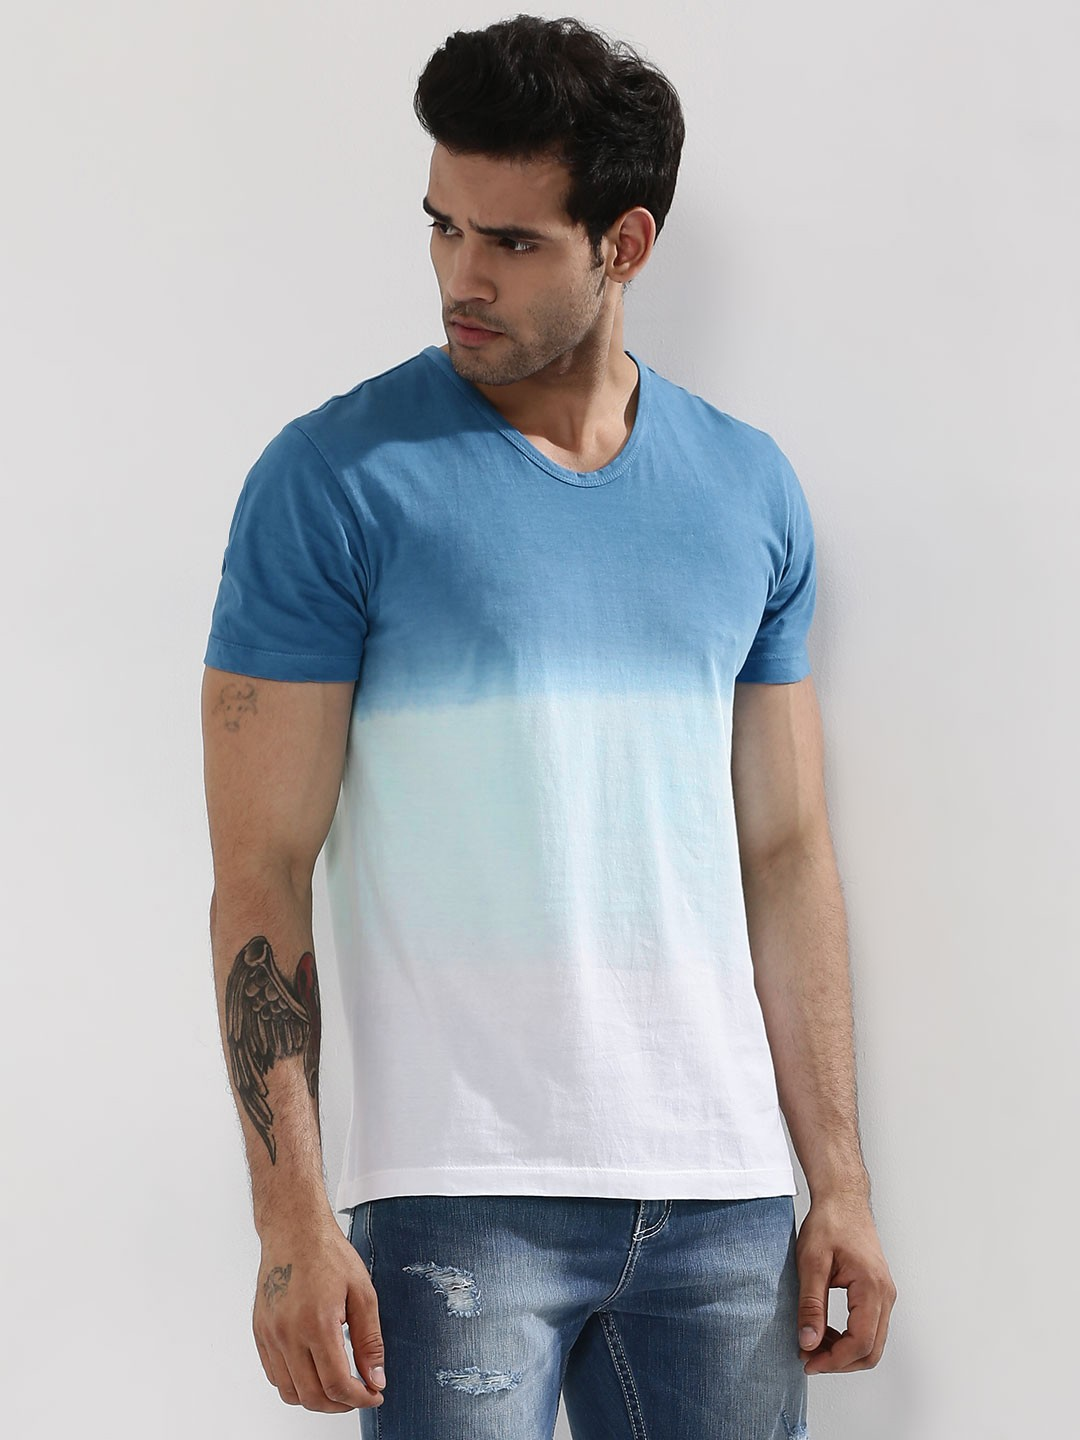 Buy online t shirts for men India, shop mens t shirts online, round neck tees, dri best tees, sports tees, buy t shirts at low price, cotton tees, printed t shirts online, mens t shirts online shopping, polo t shirts Free Shipping COD 15 days easy return & exchange policy.